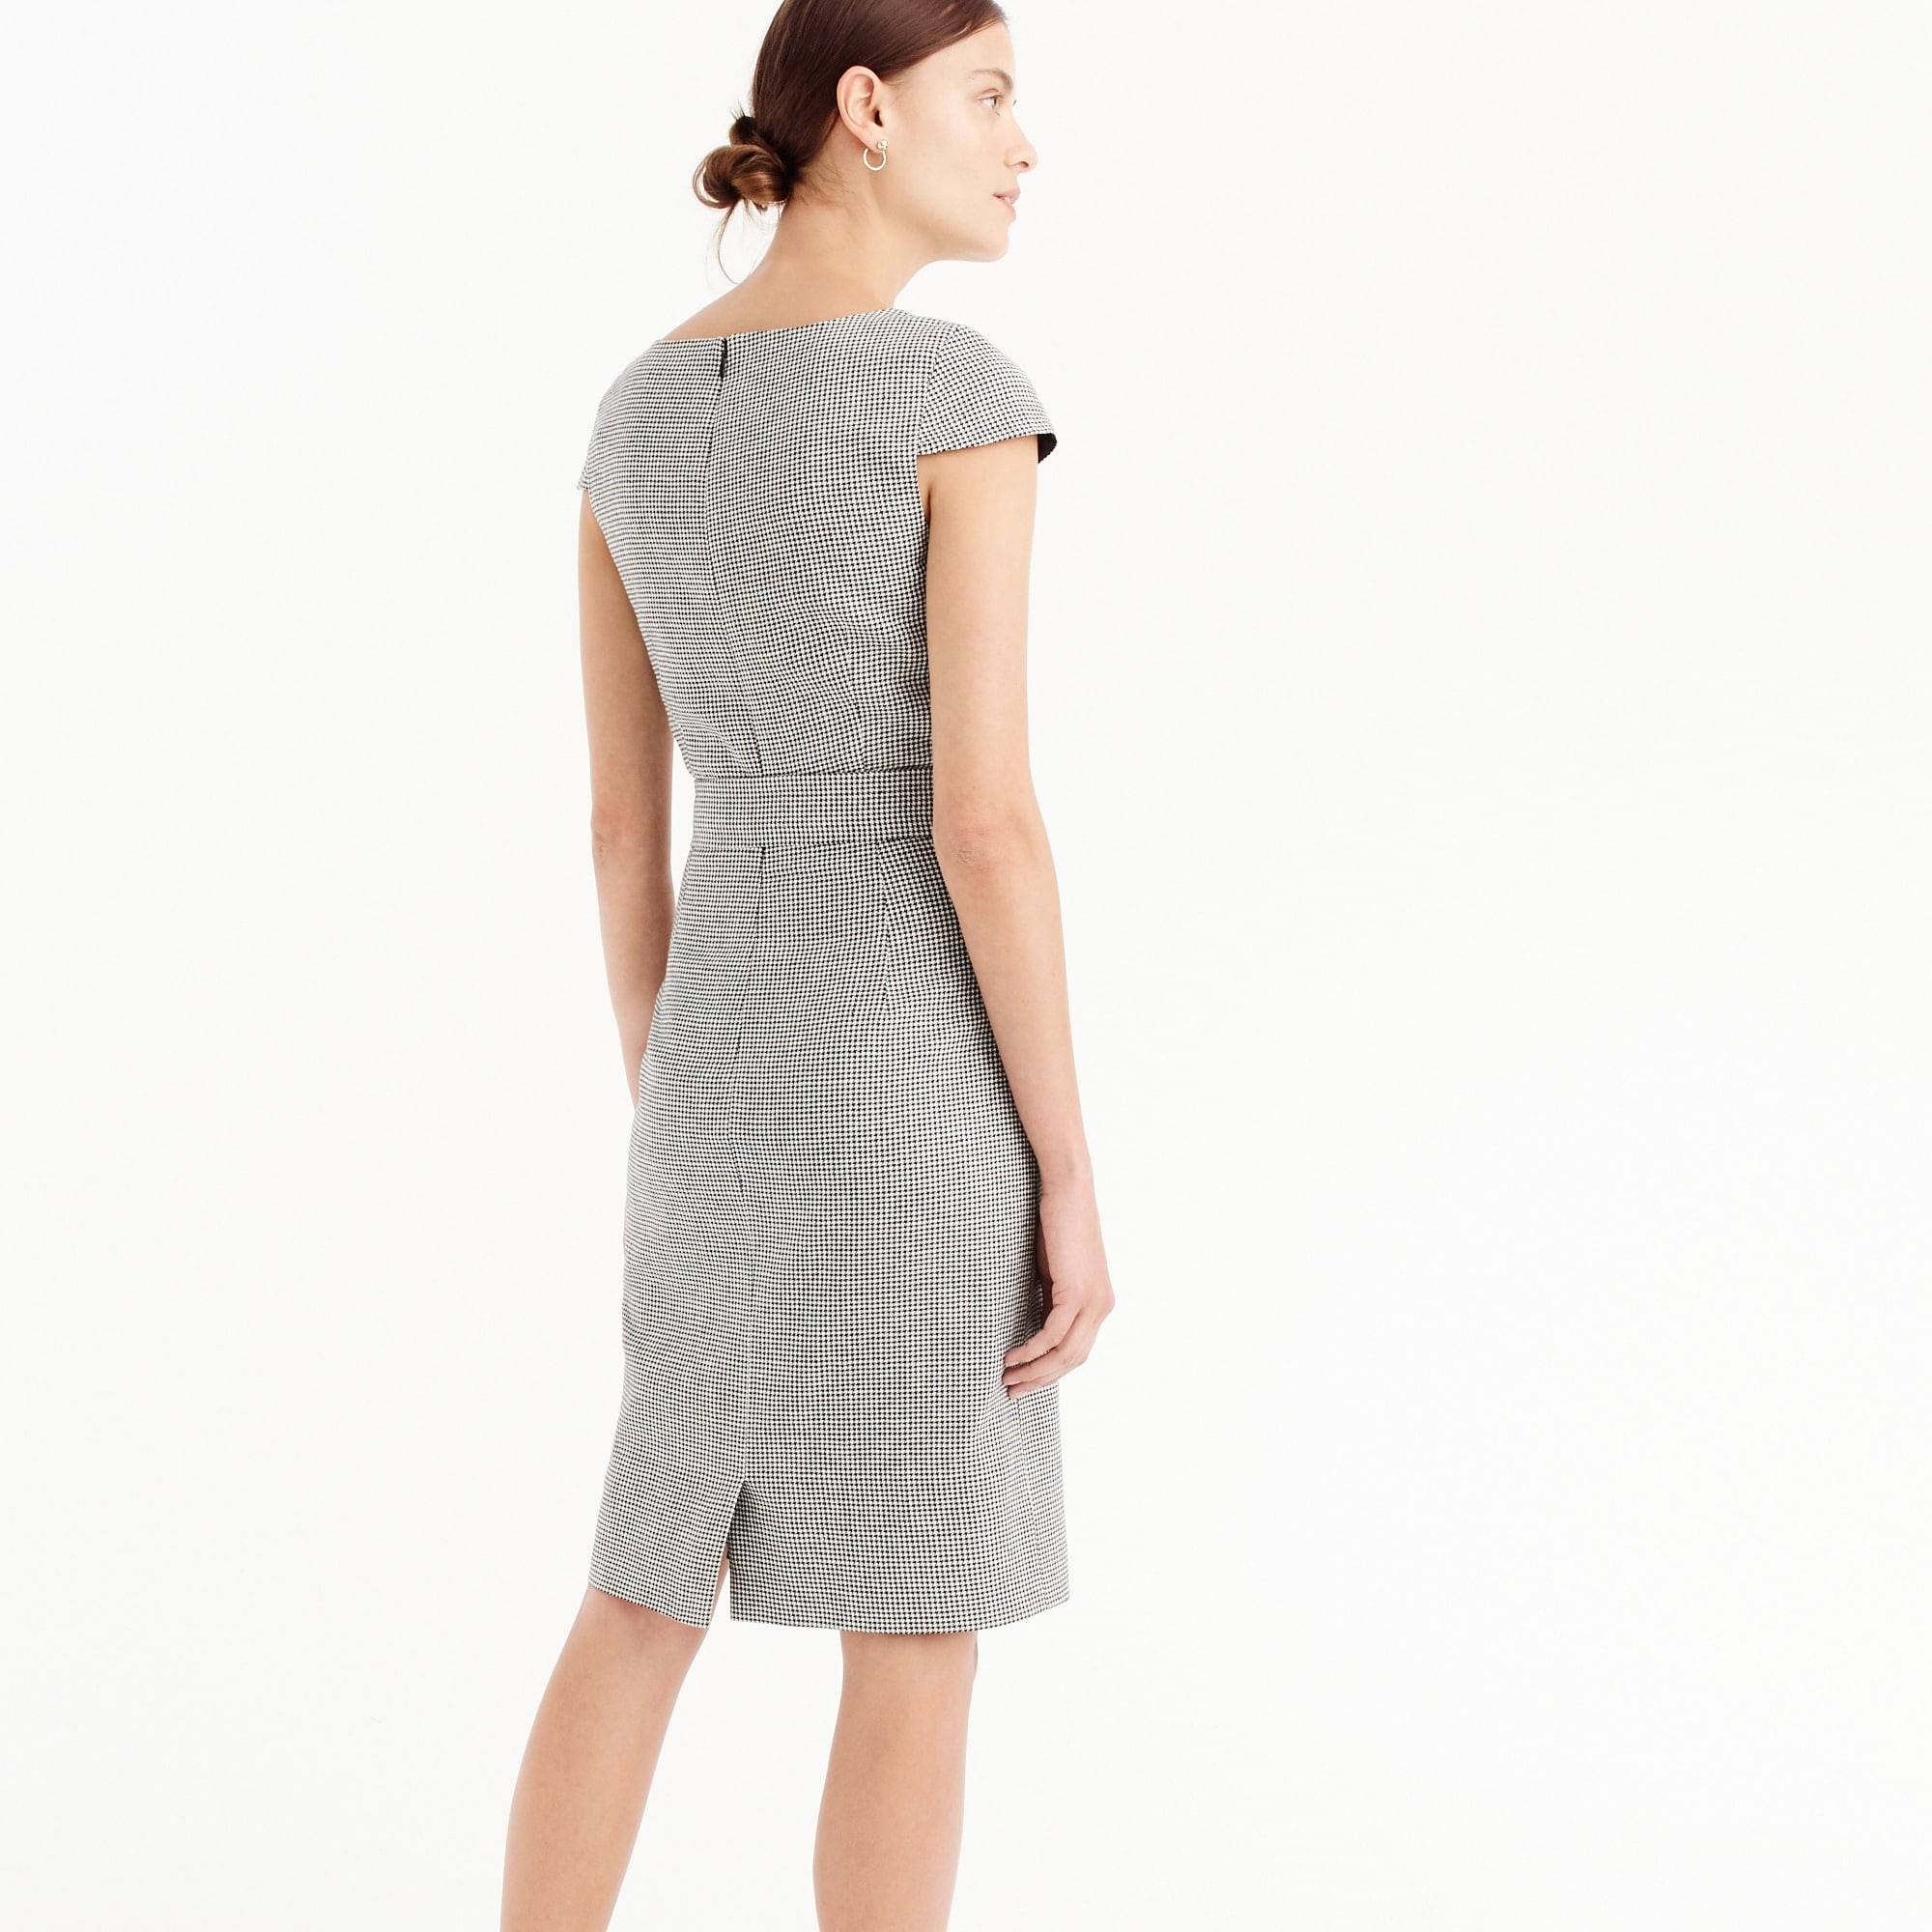 Image 4 for Tie-front dress in mini-houndstooth